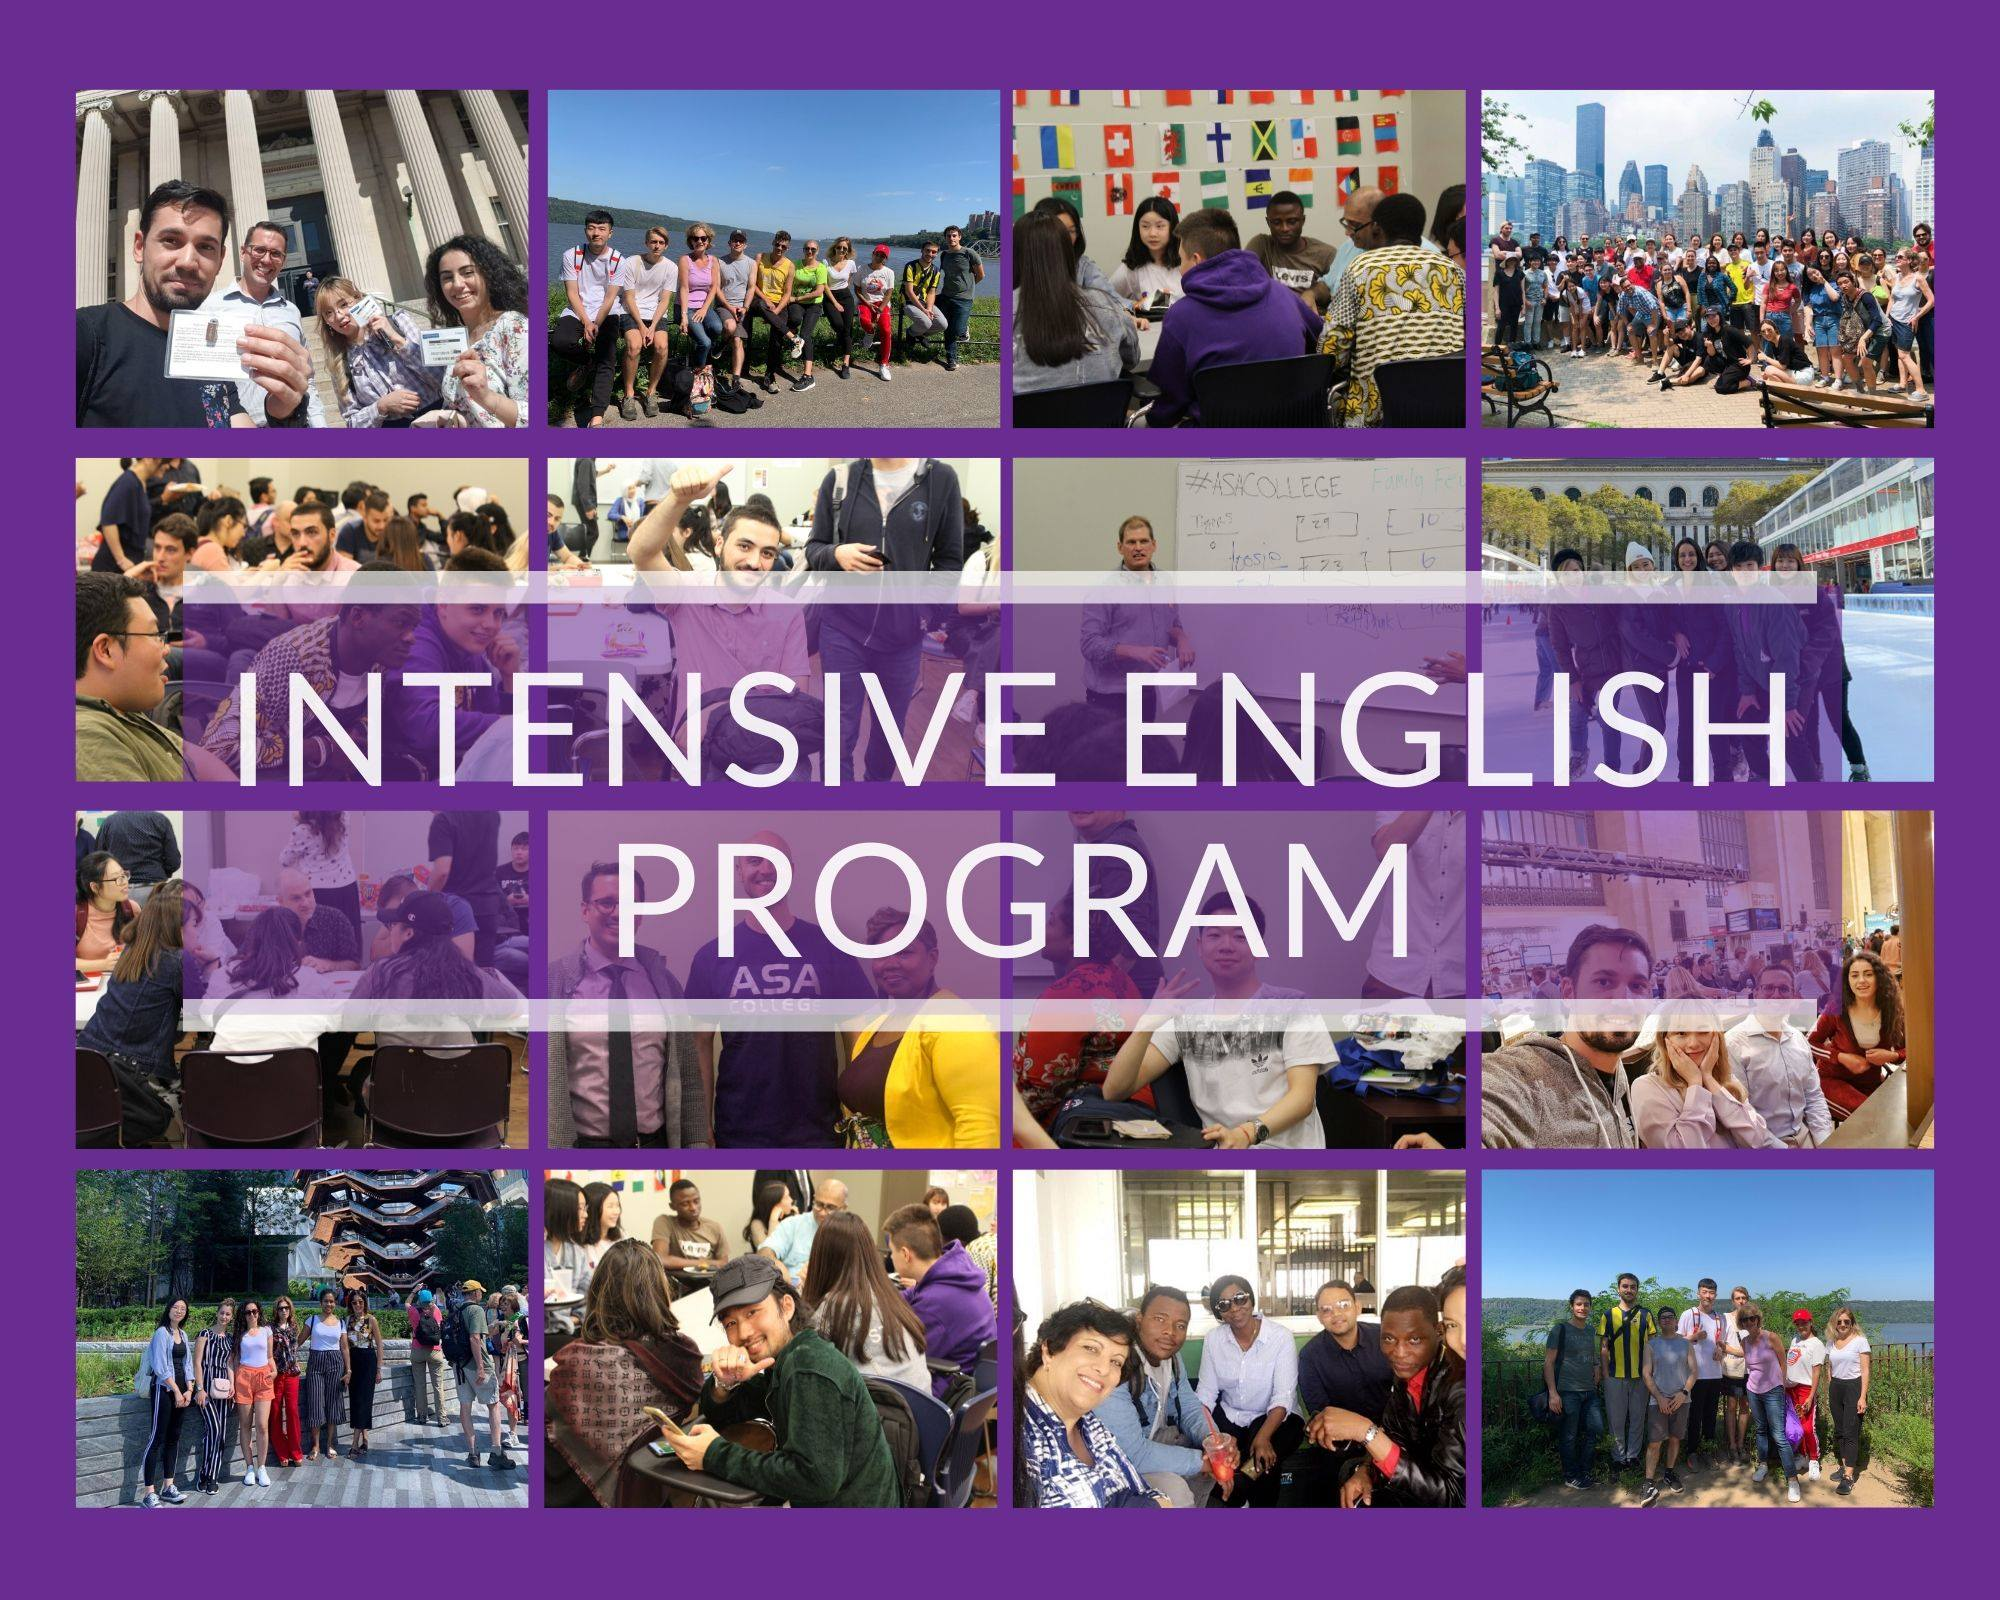 Intensive English Program (IEP) at ASA College in New York